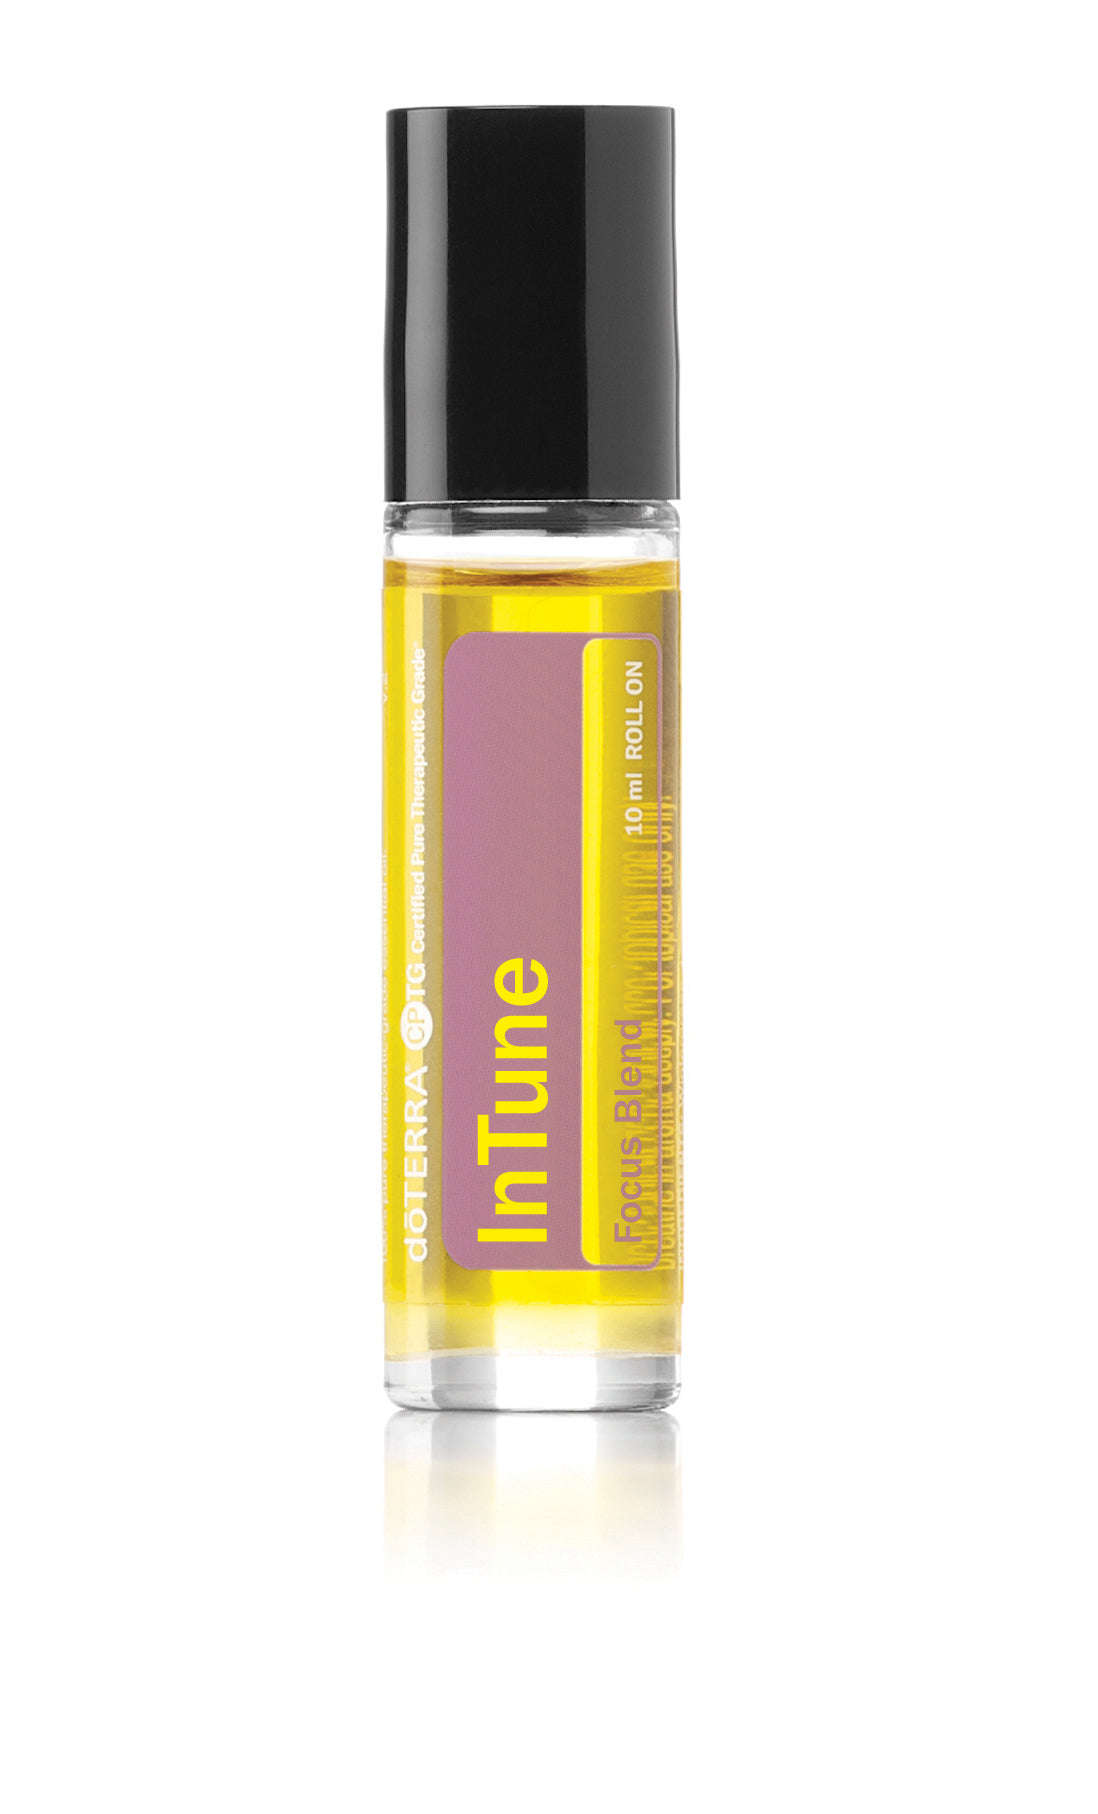 InTune Focus Blend - Purity of Earth